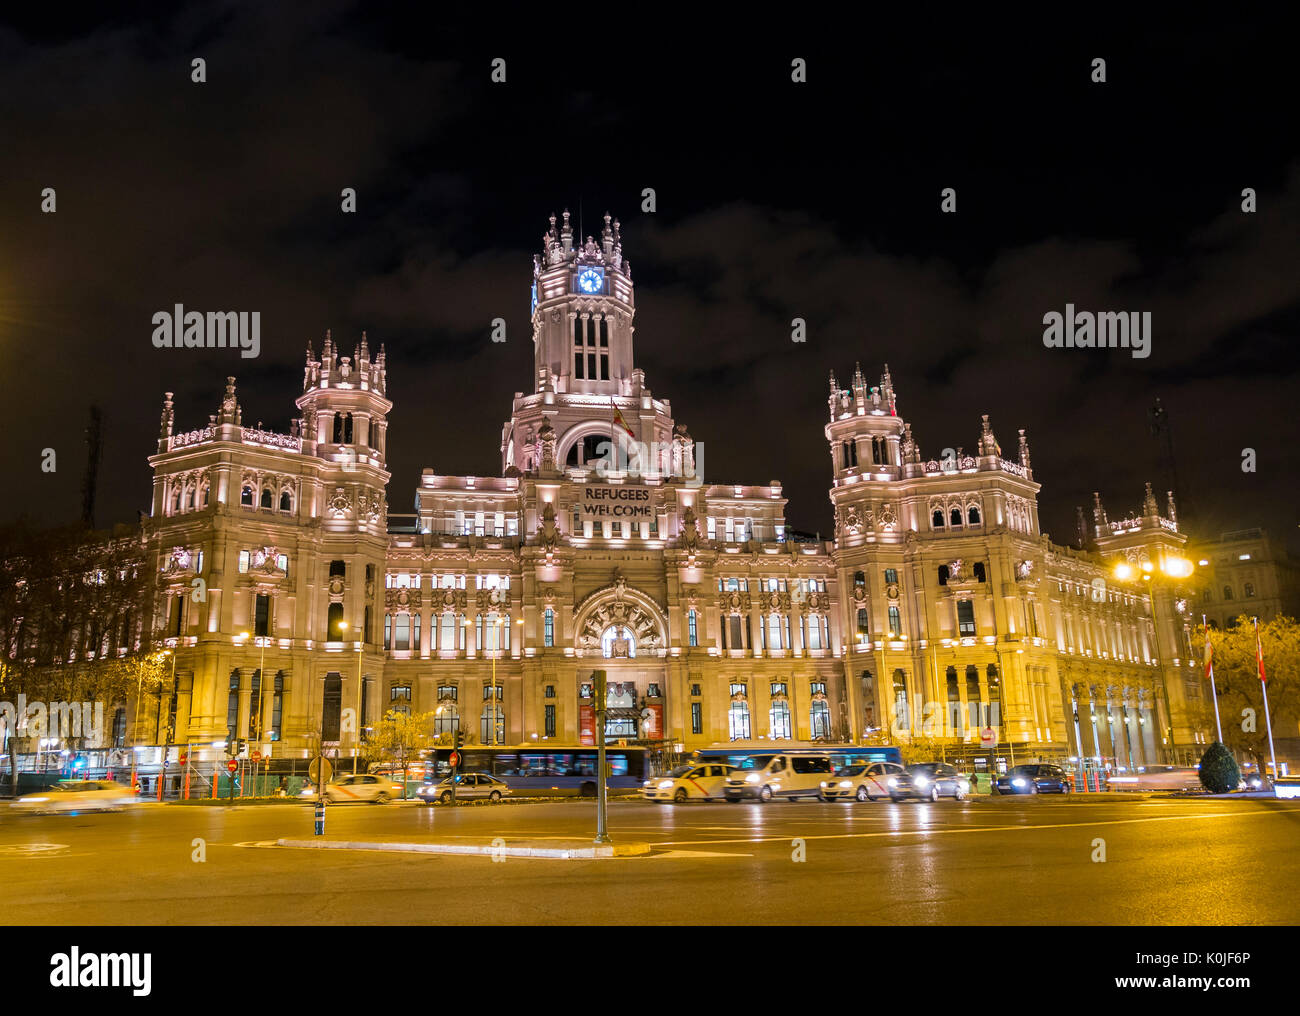 Espana correos stock photos espana correos stock images for Edificio de correos madrid